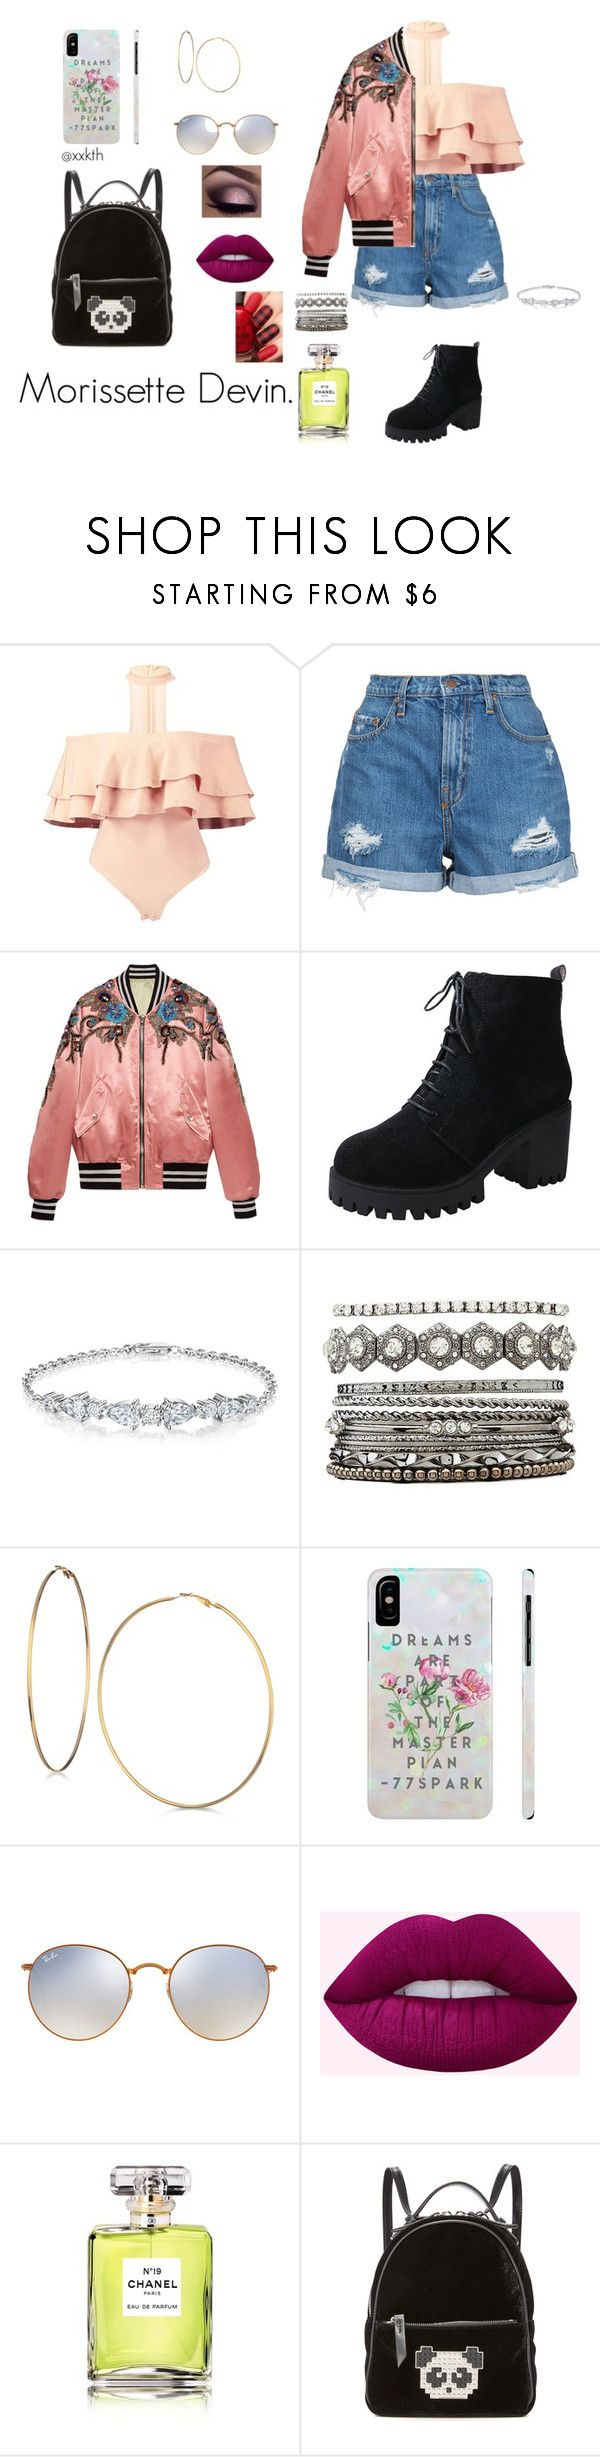 """oc n°2; morissette devin."" by xxkth on Polyvore featuring moda, Nobody Denim, Gucci, Charlotte Russe, GUESS, Ray-Ban, Chanel y Les Petits Joueurs"